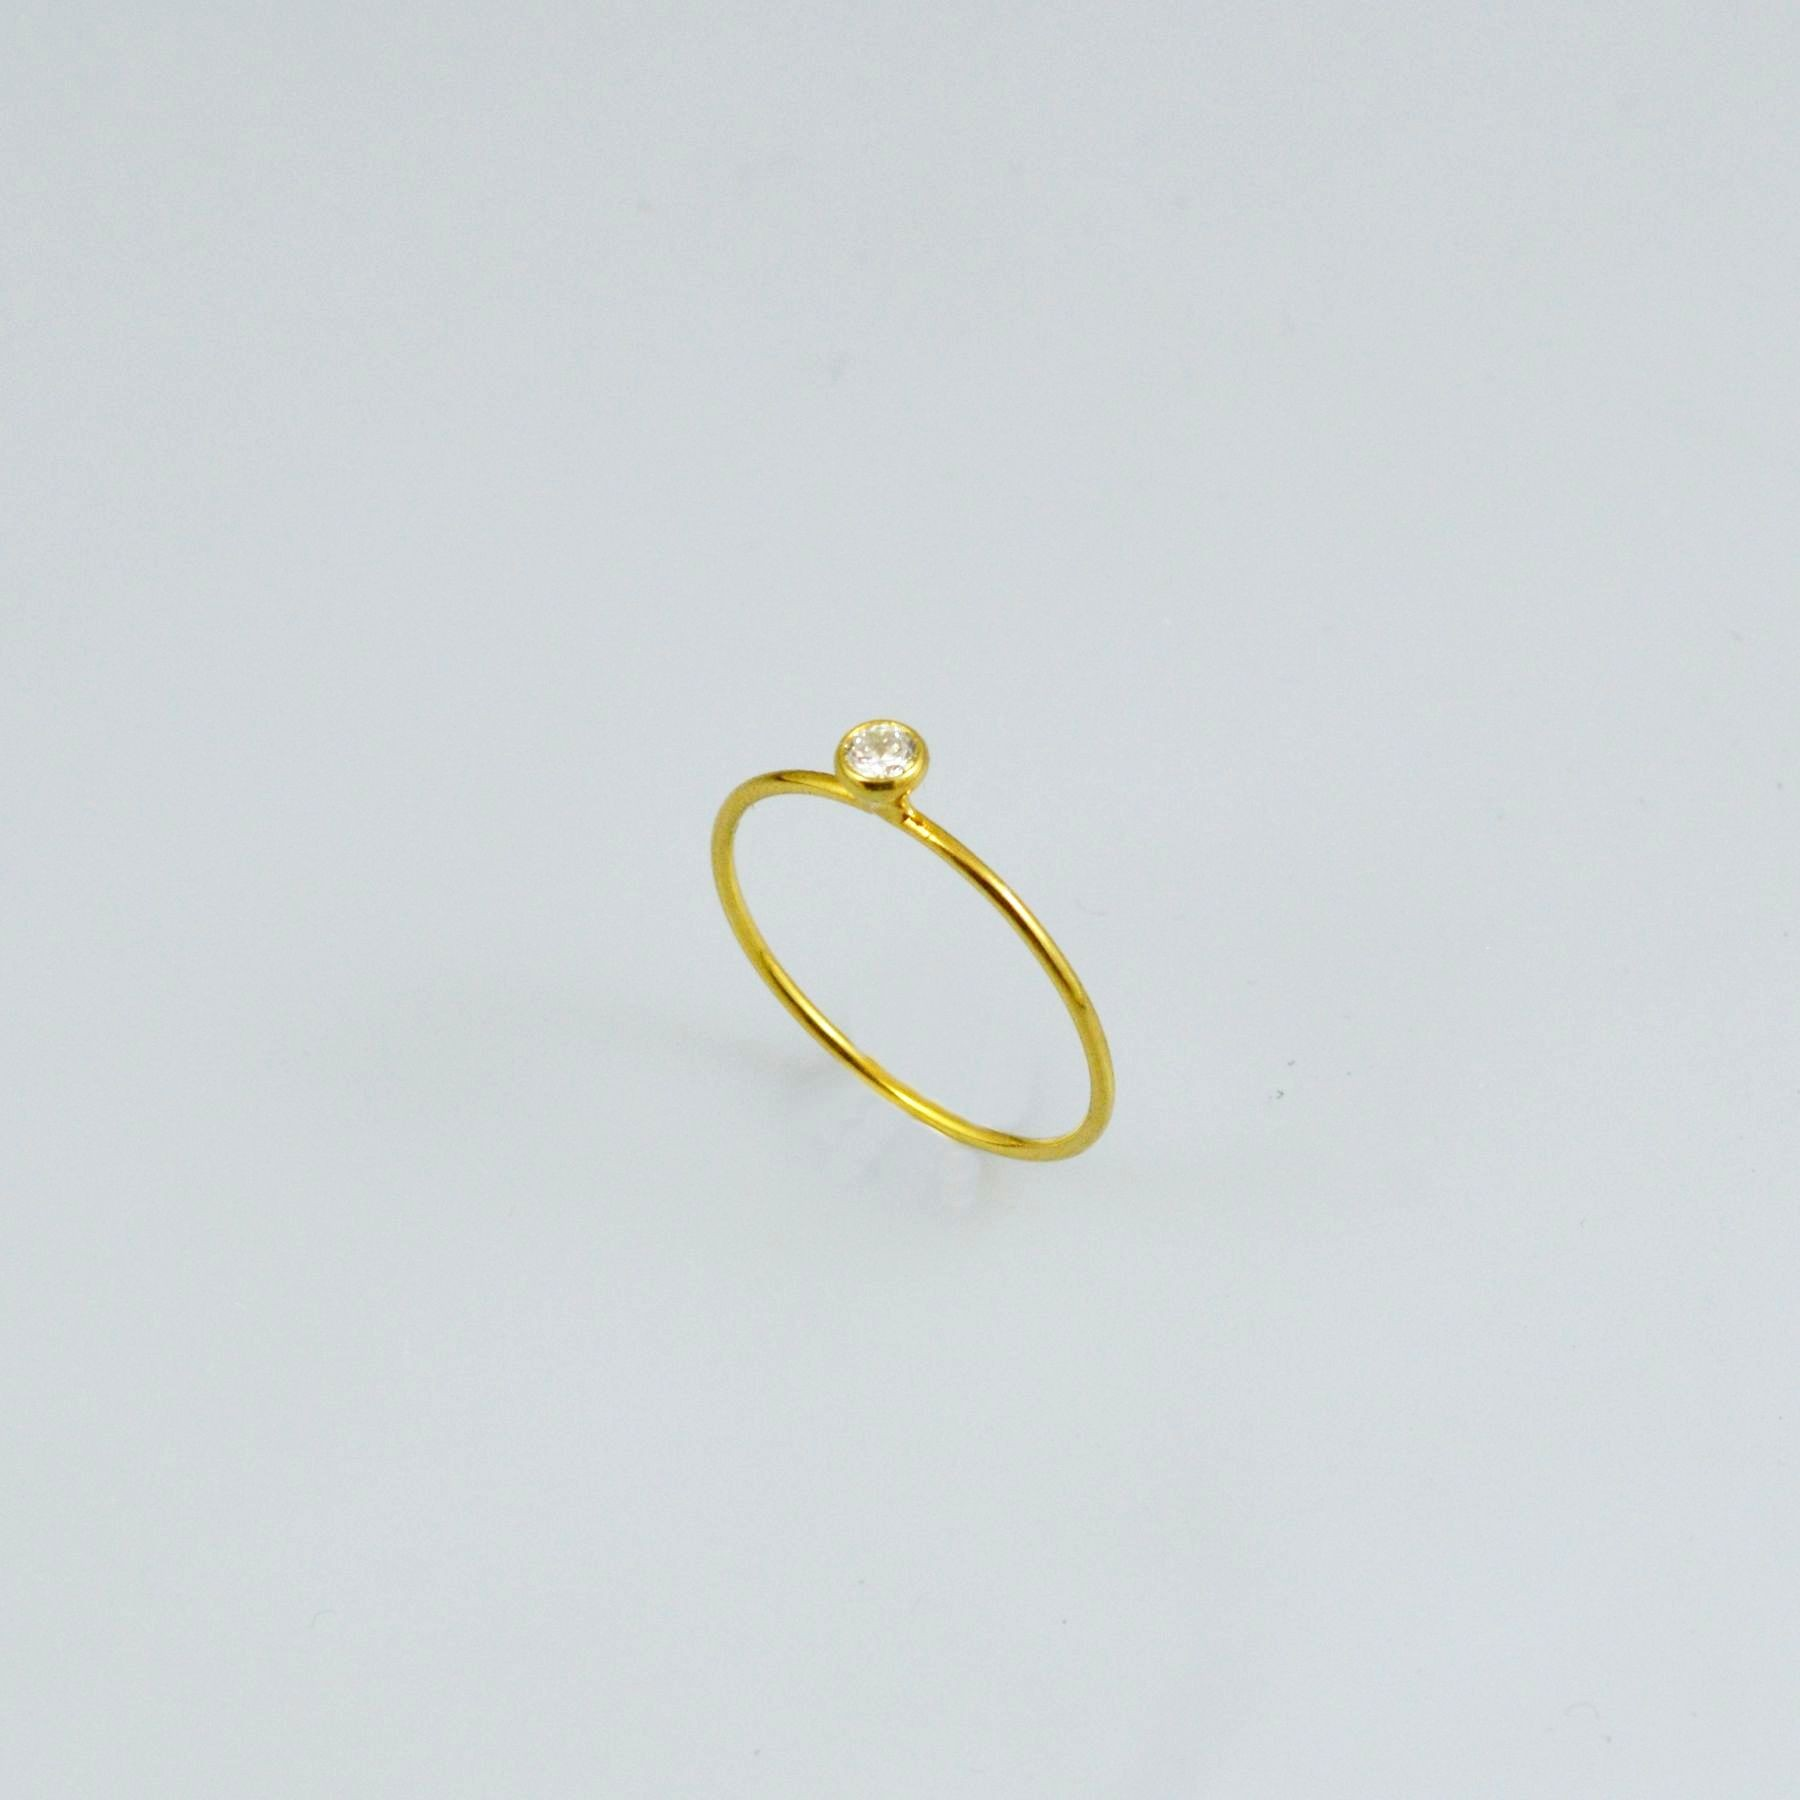 Handmade gold ring 14K with synthetic stones